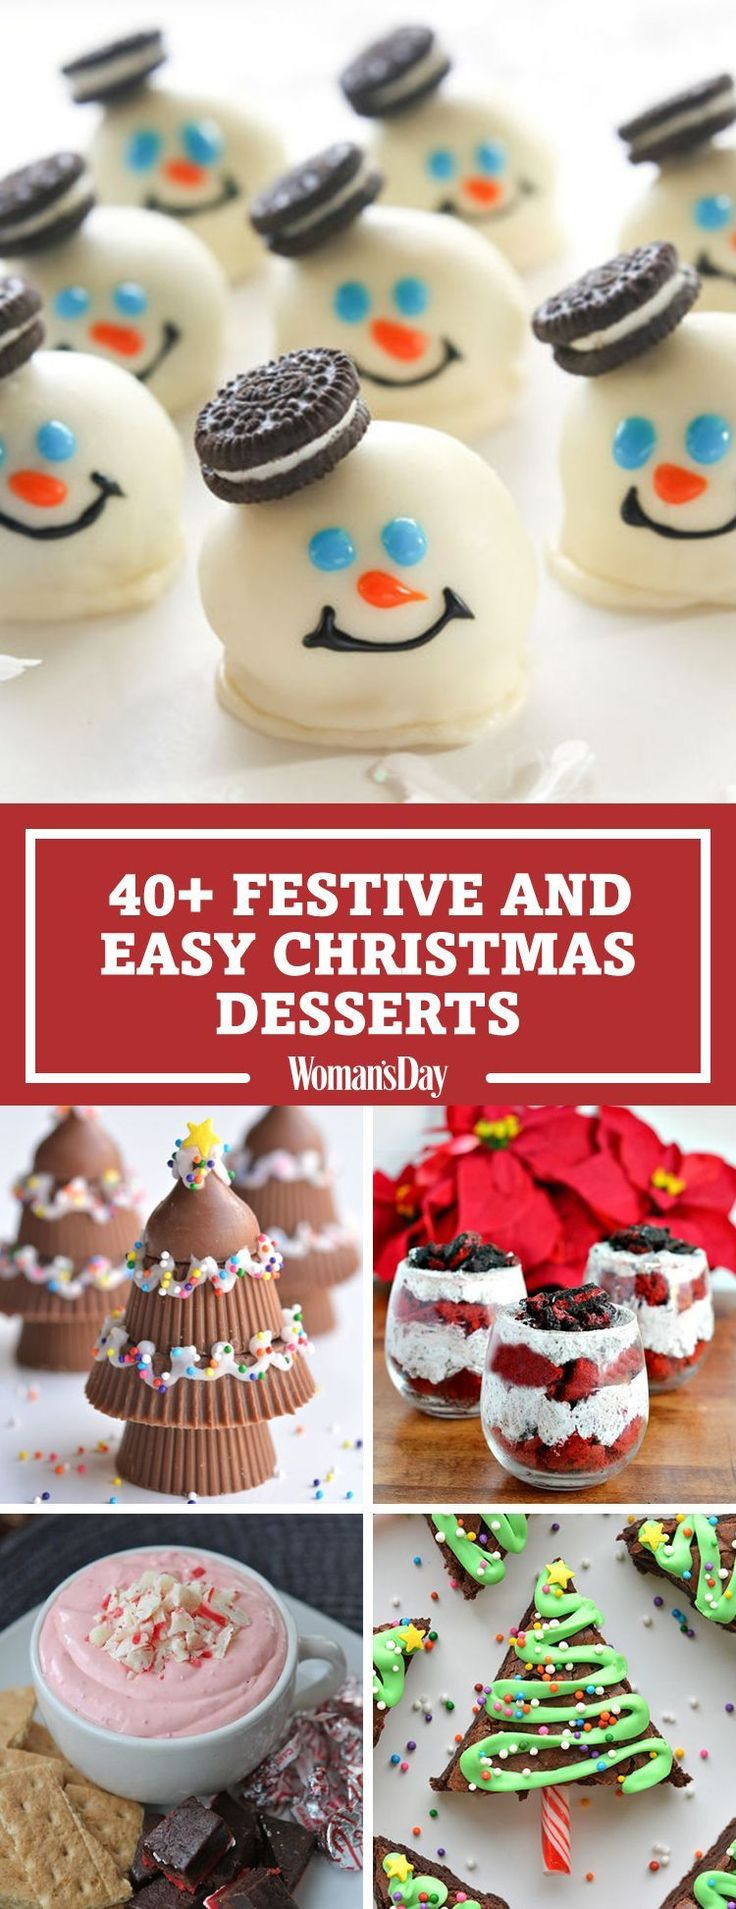 Christmas Desserts 2019  40 festive and easy christmas desserts